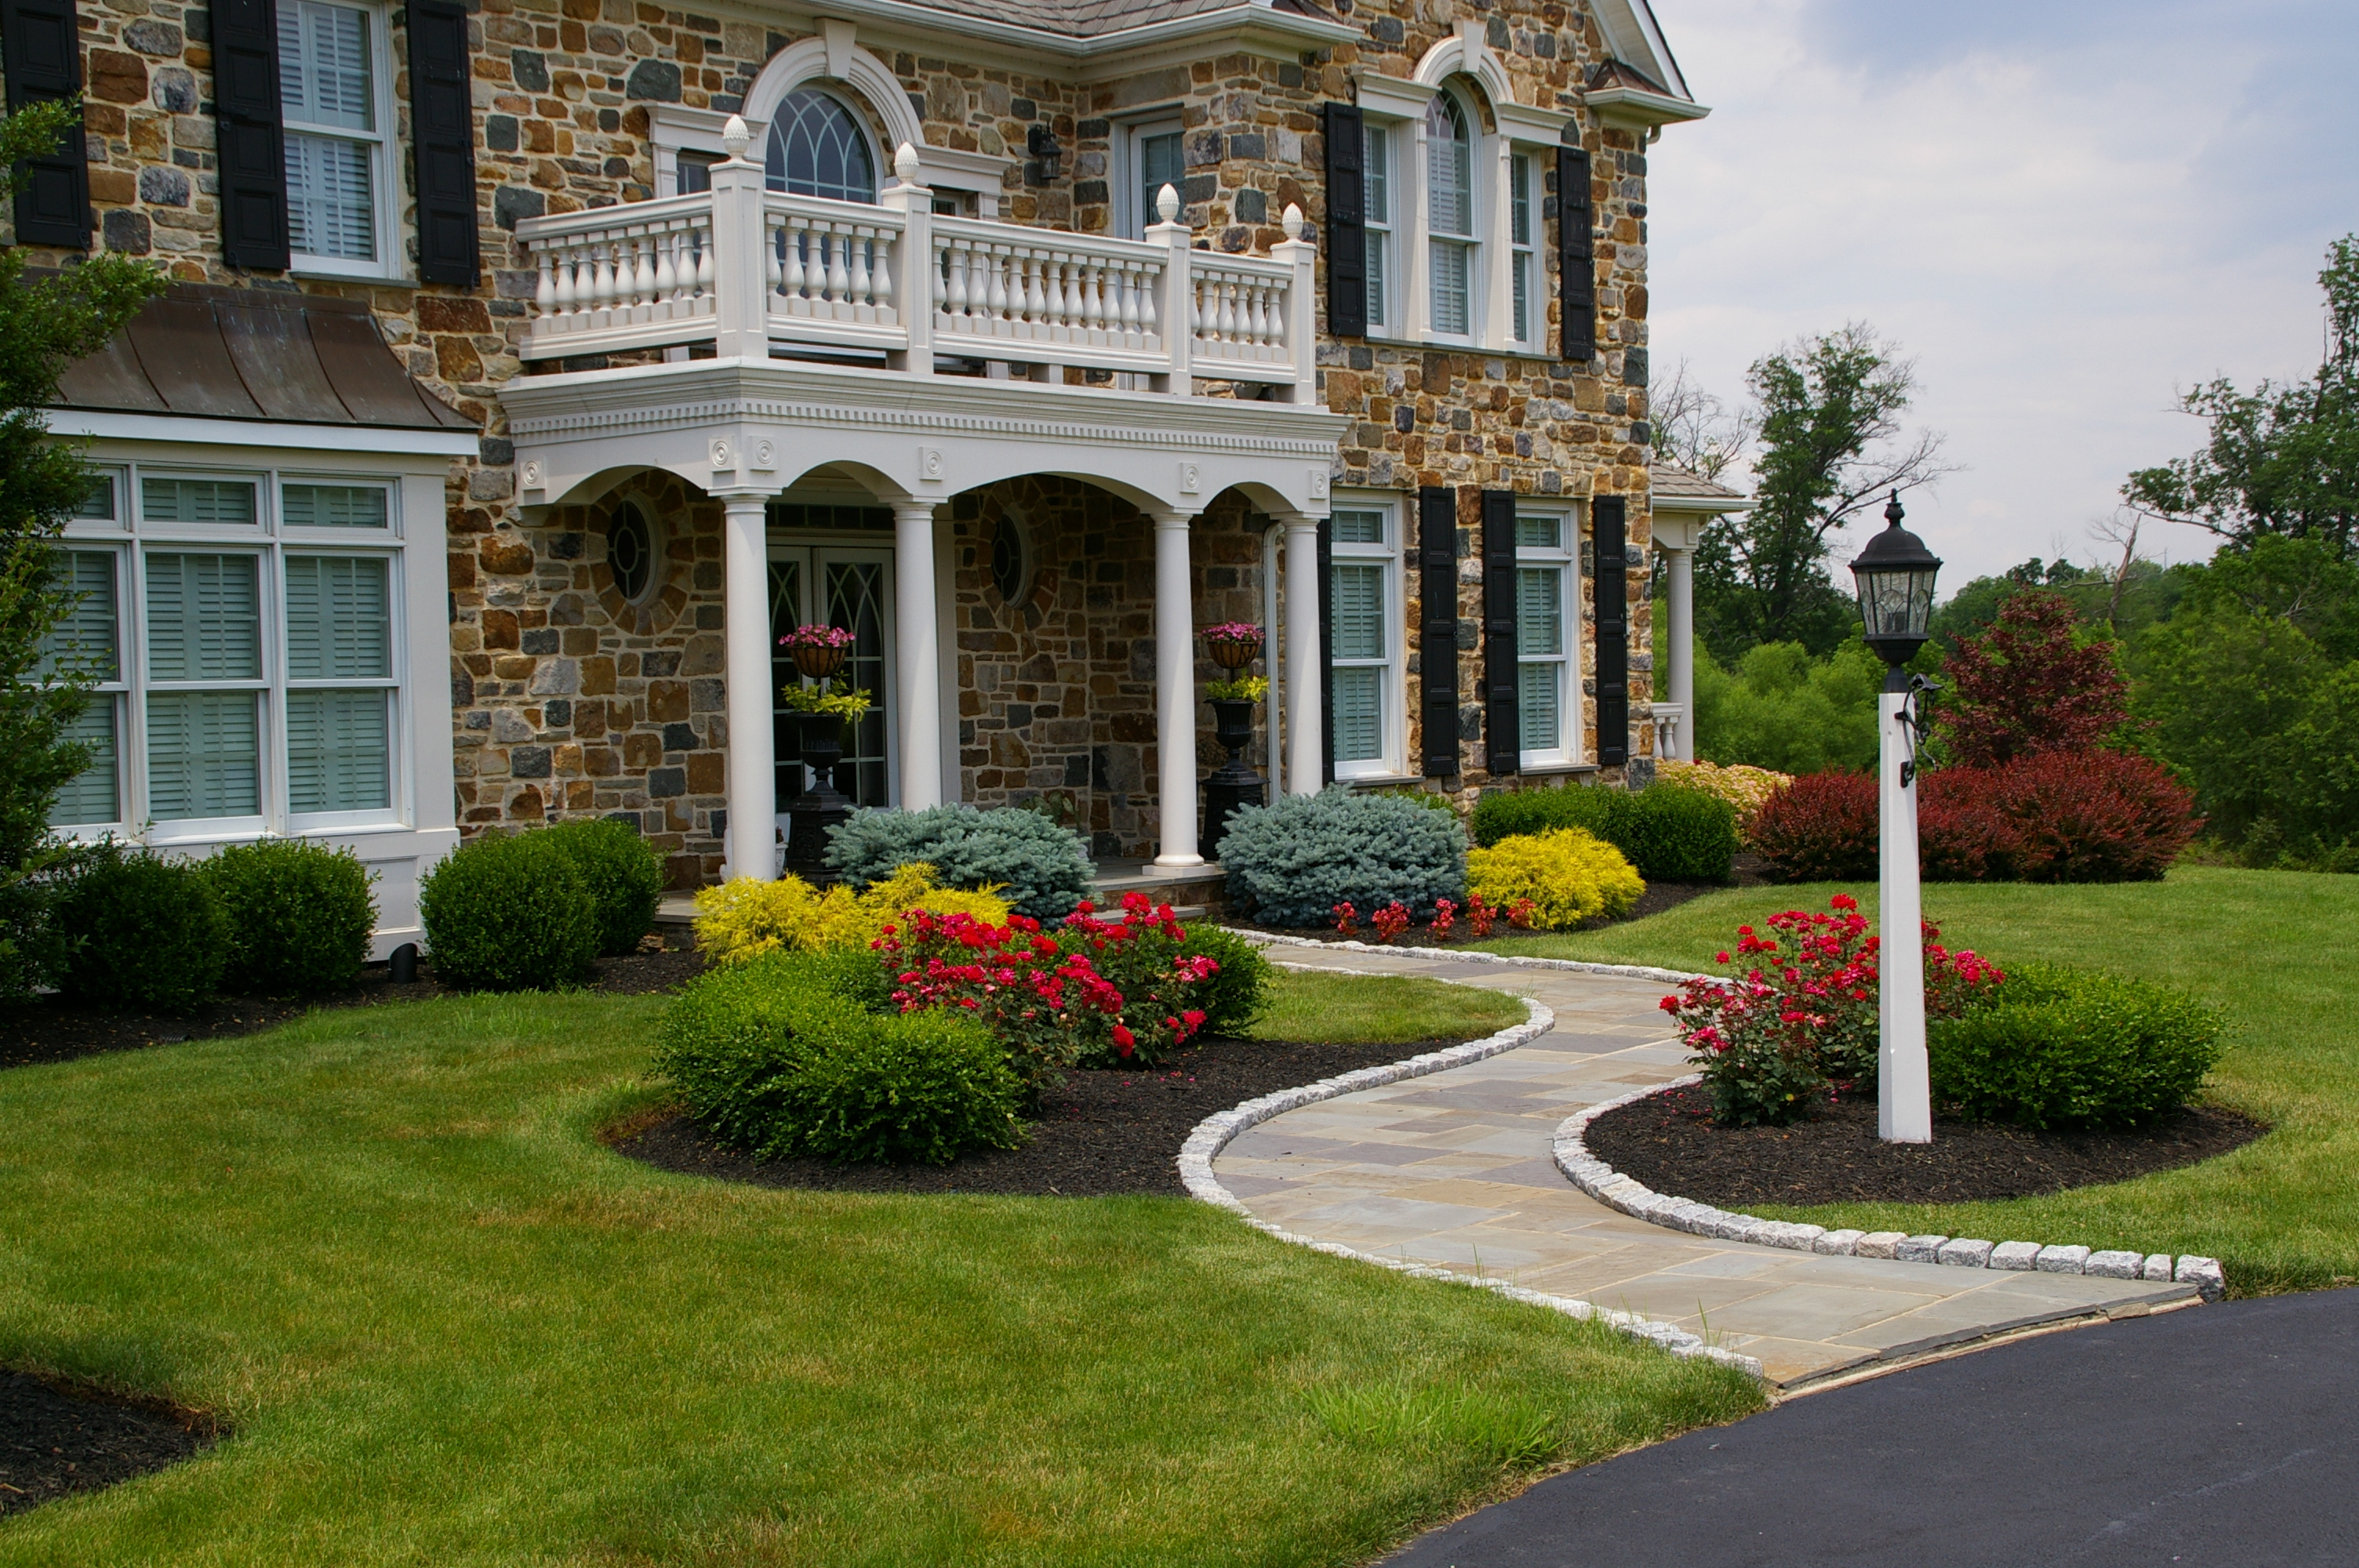 Curb appeal archives garden design inc for Front lawn design